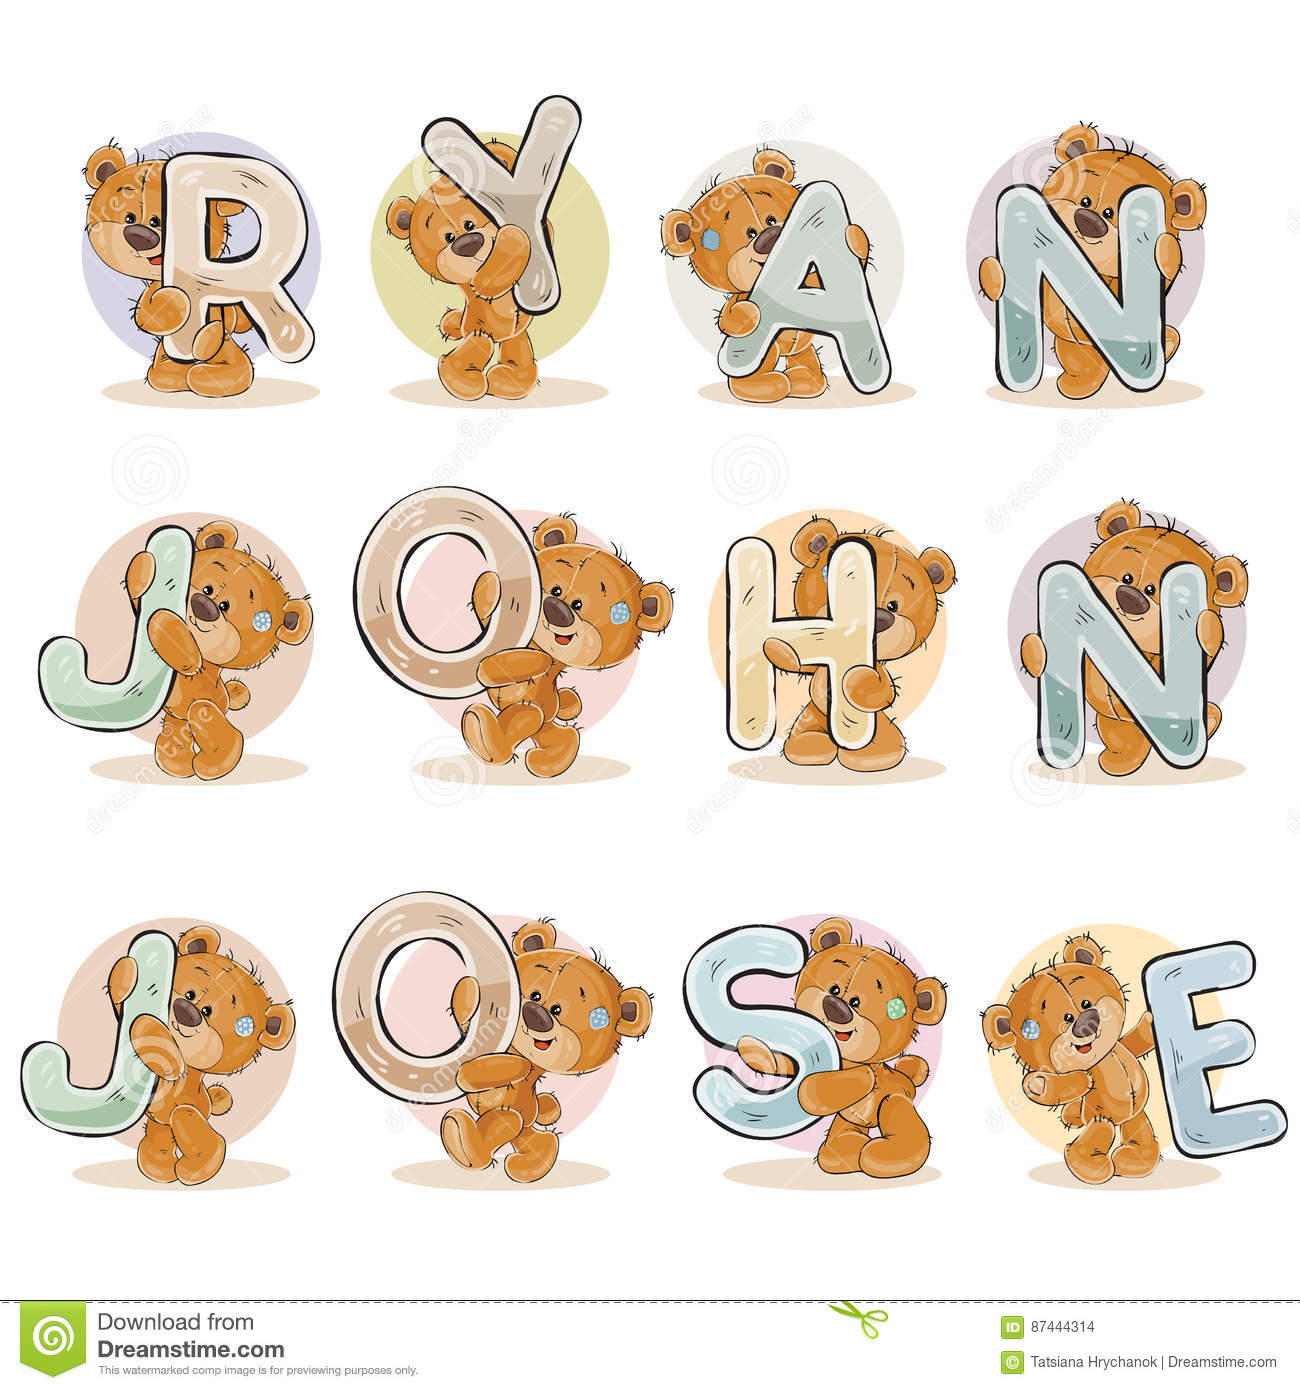 Decorative Letters Names For Boys Ryan John Jose Made Decorative Letters With Teddy